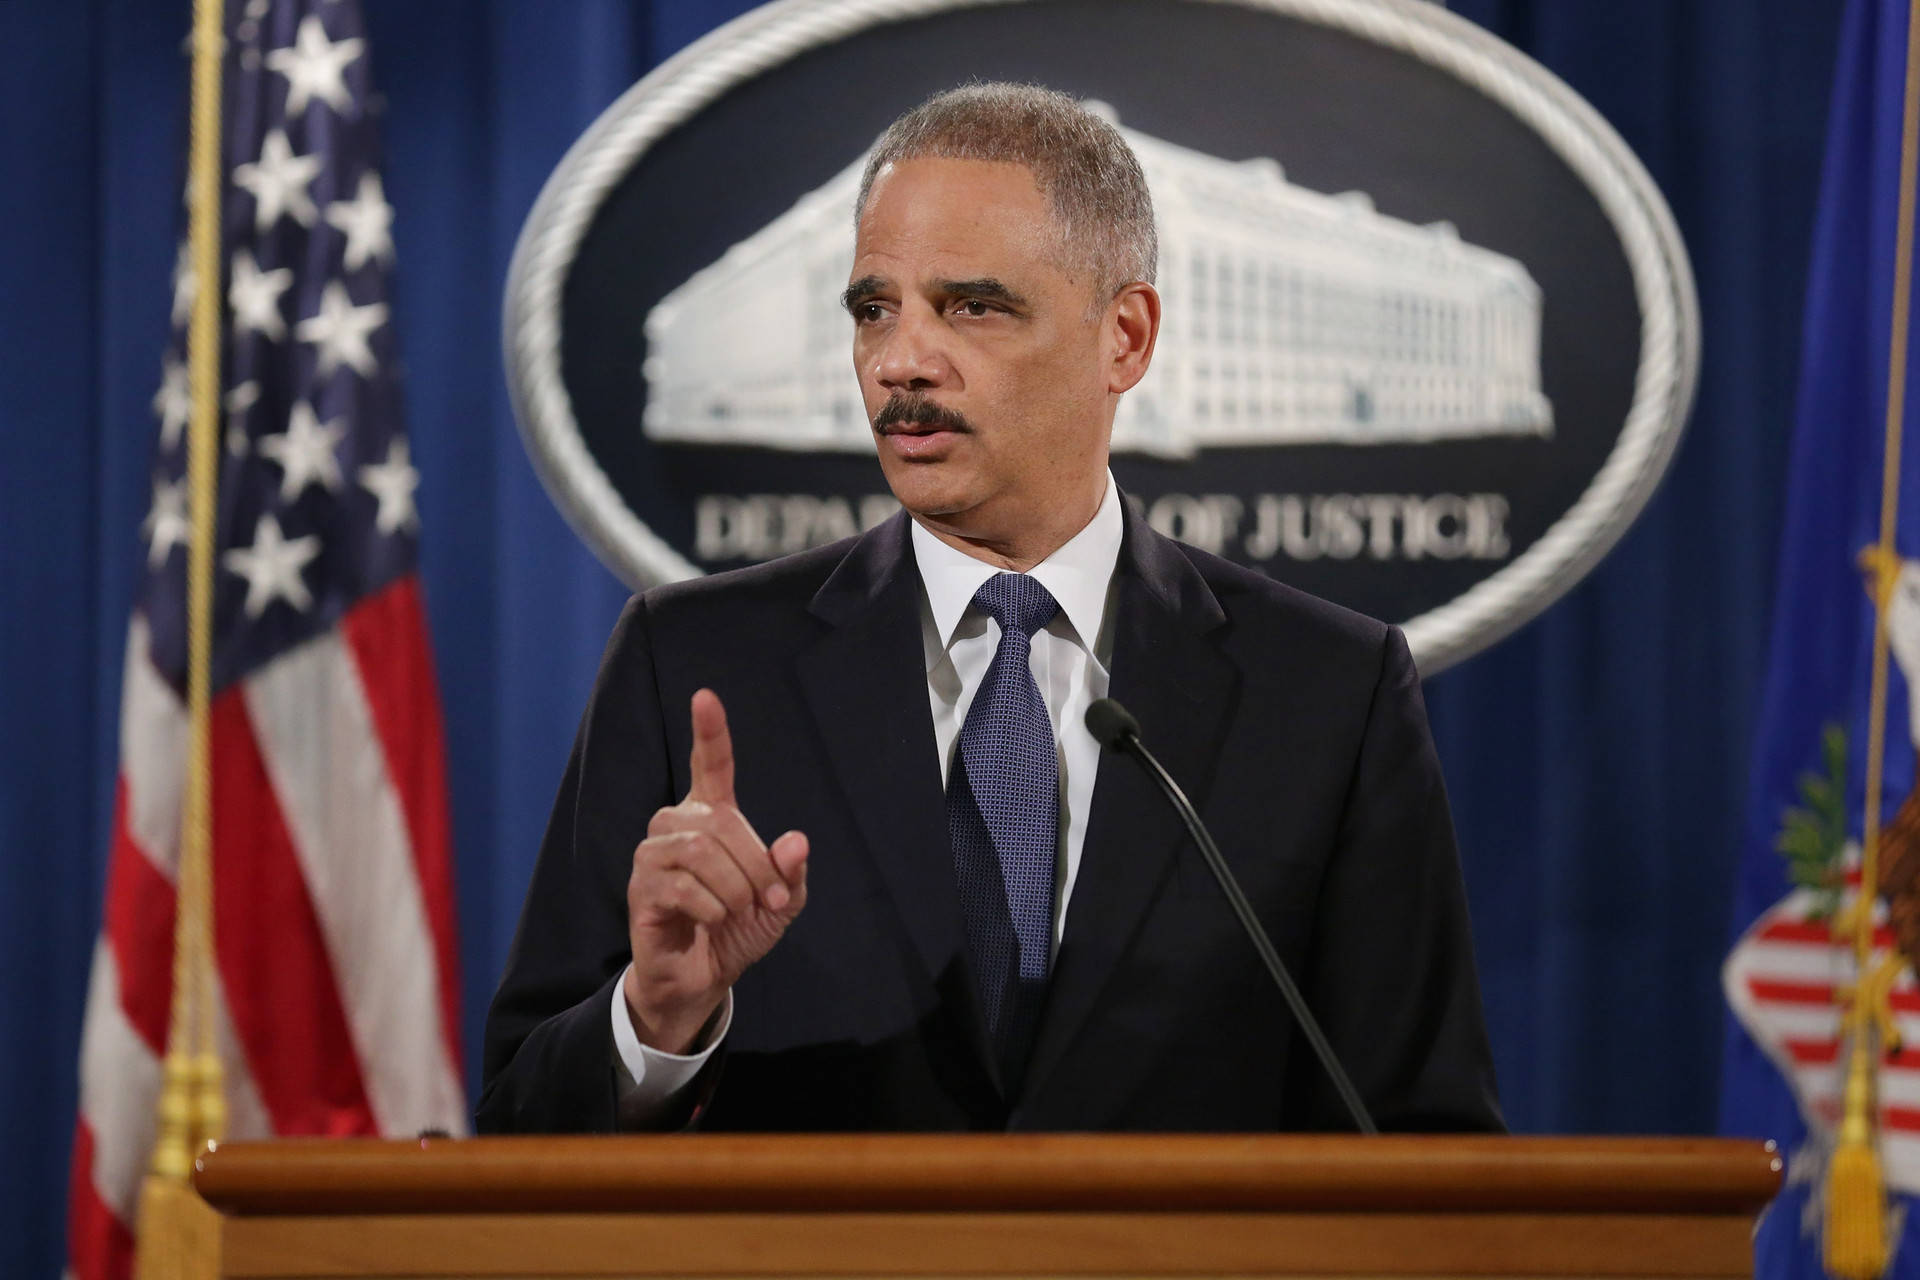 Former U.S. Attorney General Eric Holder in 2015. Chip Somodevilla/Getty Images